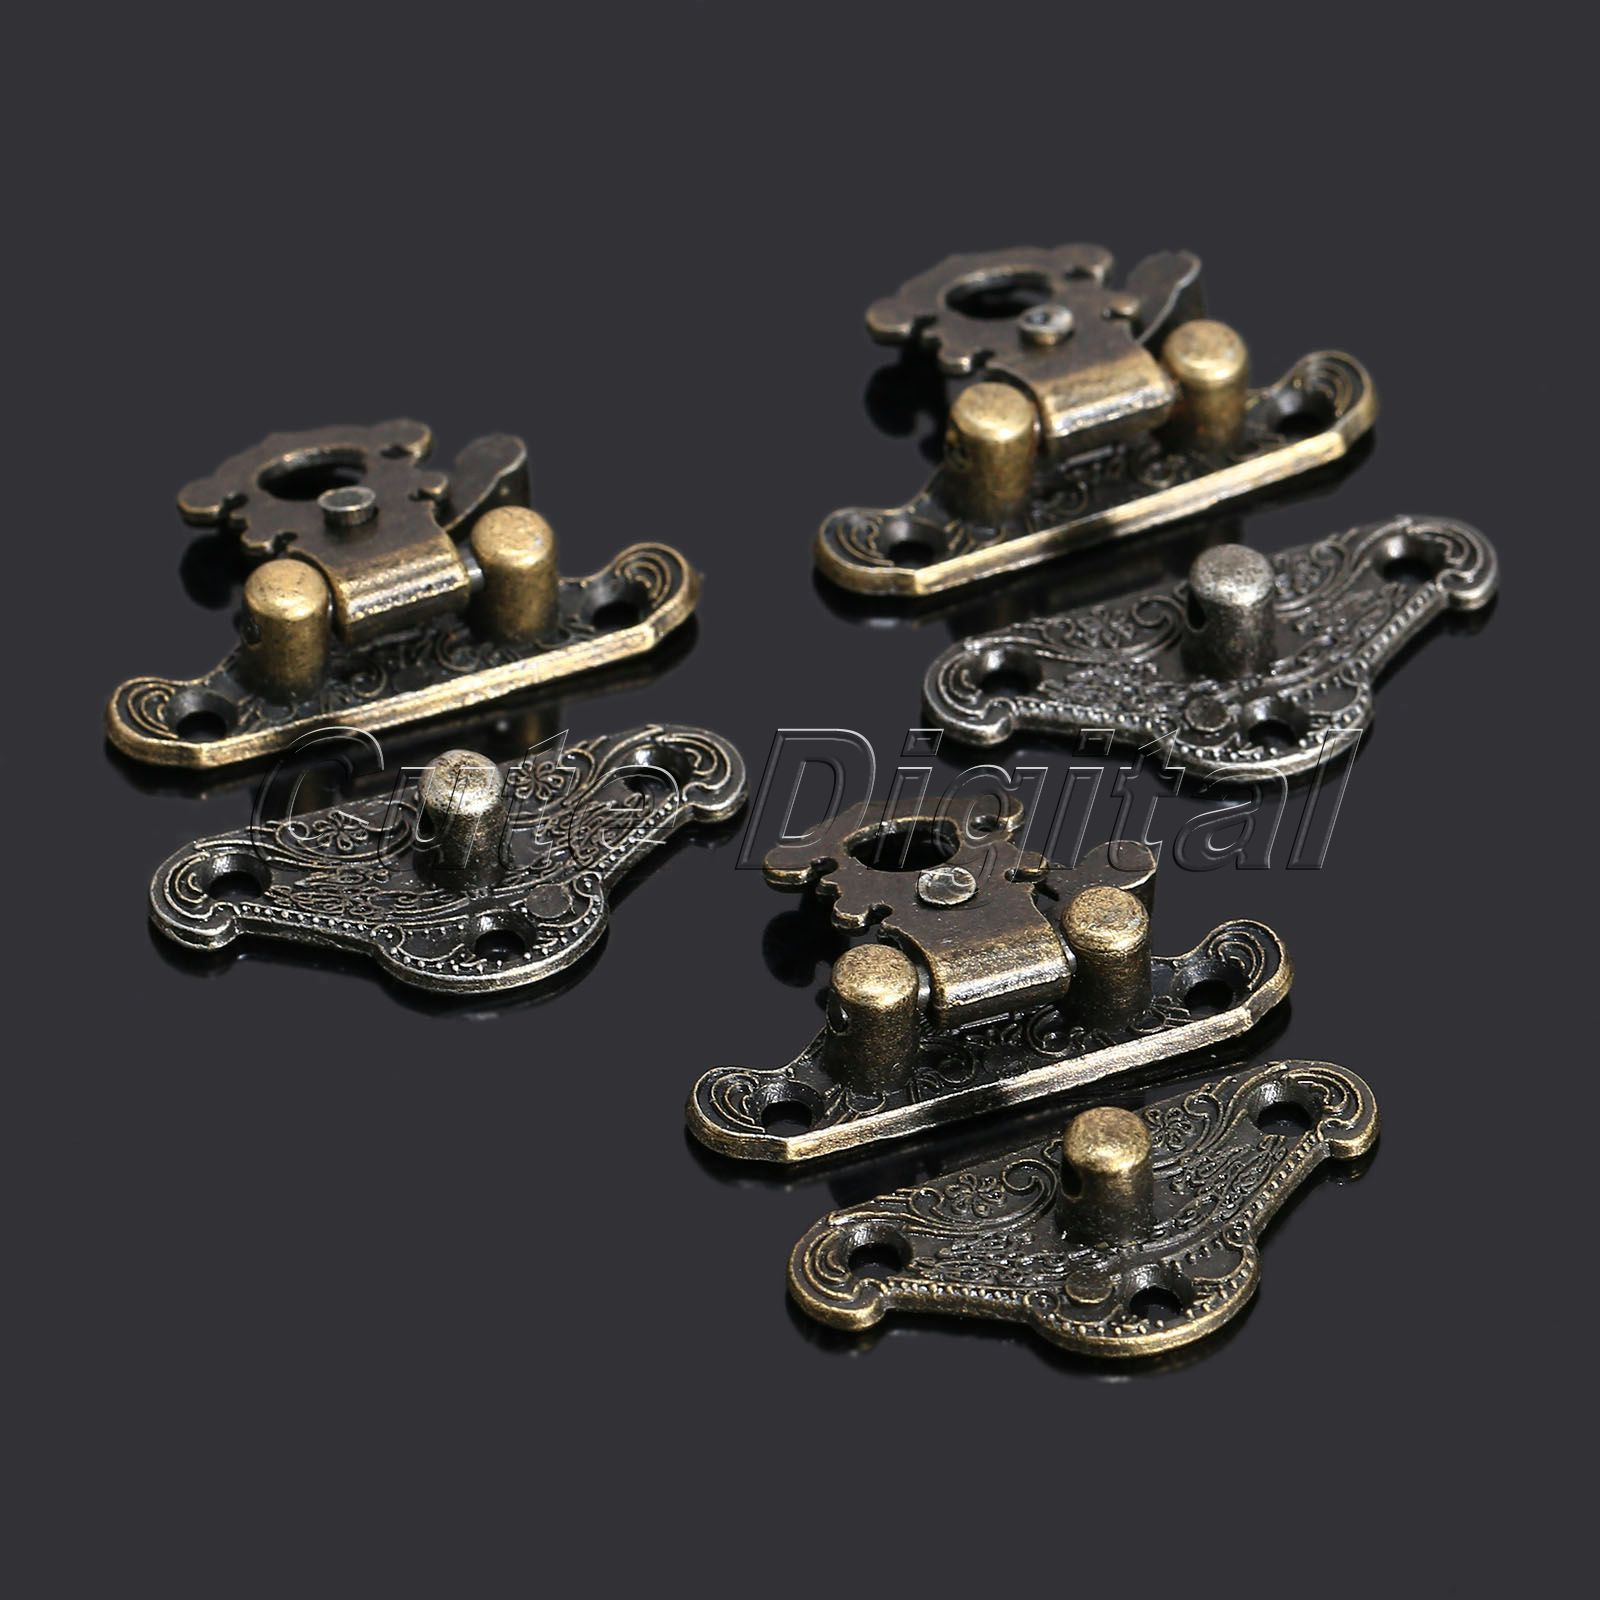 12pcs 28x23mm Antique Latches Catches Hasps Clasp Wooden Buckles Decorative Jewelry Wooden Box Latch Hook +Screw Funitures Decor